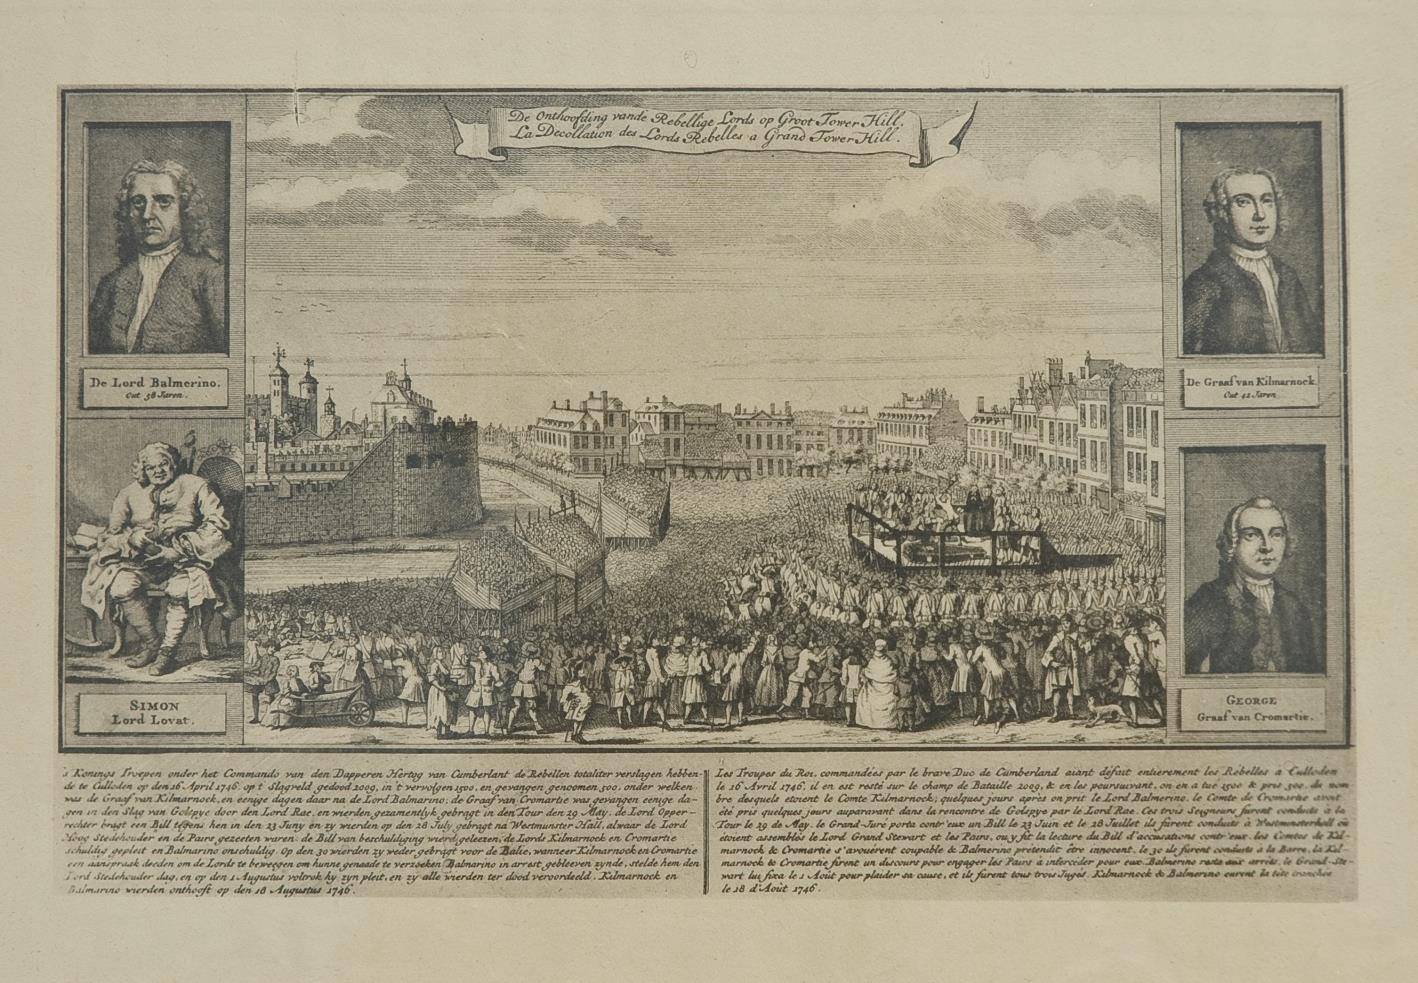 A popular engraving of the condemned Jacobite peers featuring the 3rd Earl of Cromartie alongside Lords Balmerino Lovat and Kilmarnock who were executed on Tower Hill